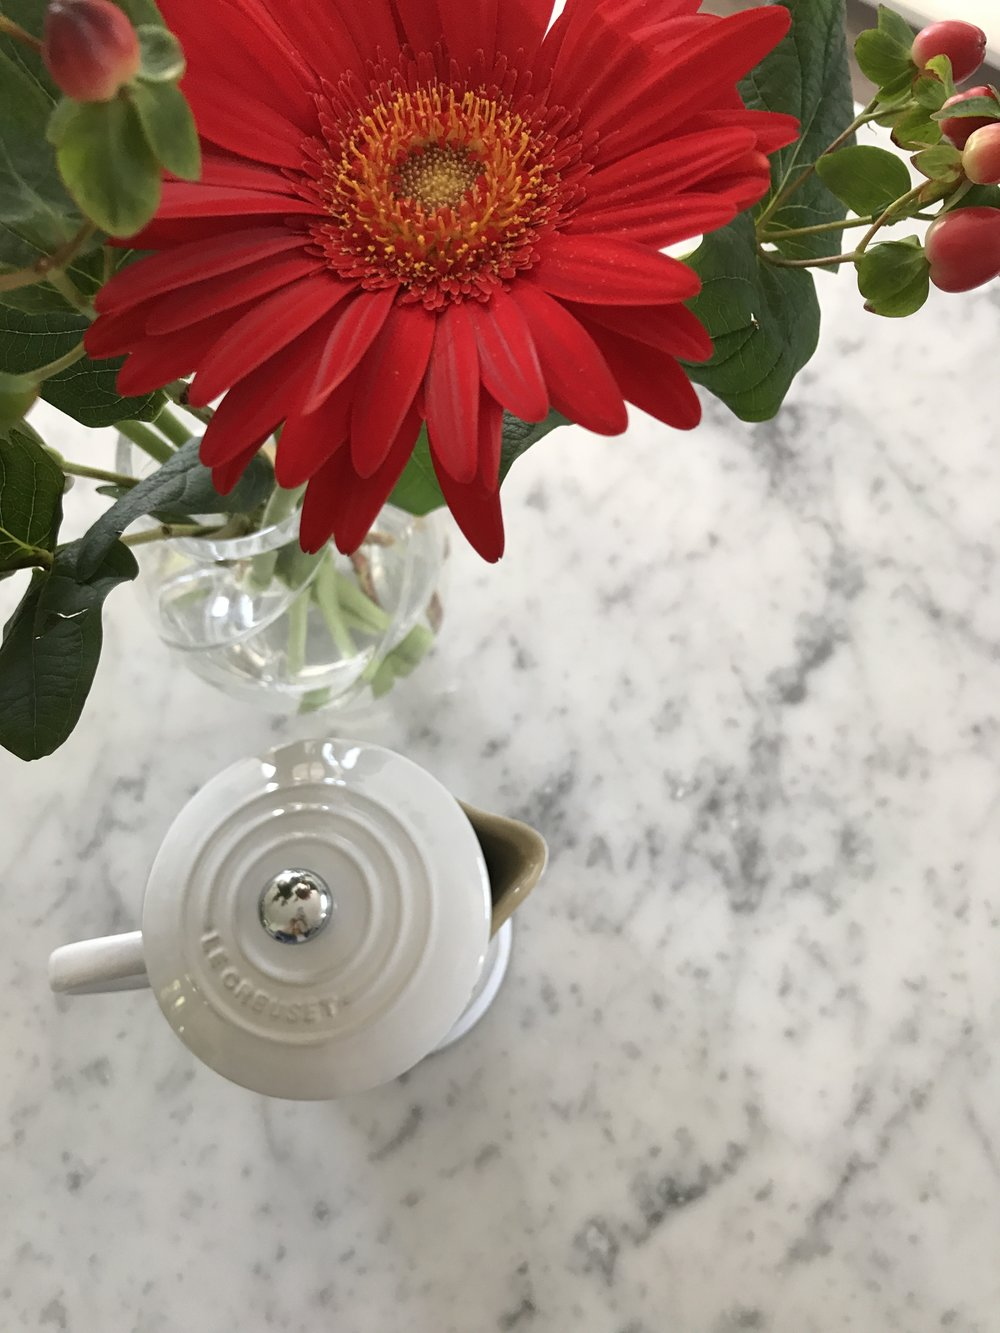 My beautiful Husband brought home some flowers this weekend which are beyond gorgeous! REd to celebrate both Canada Day and the Fourth of July! On the weekend we enjoy using our carafe from Le Creuset. Spending a little more time with the luxury of coffee always helps us feel a bit more relaxed!